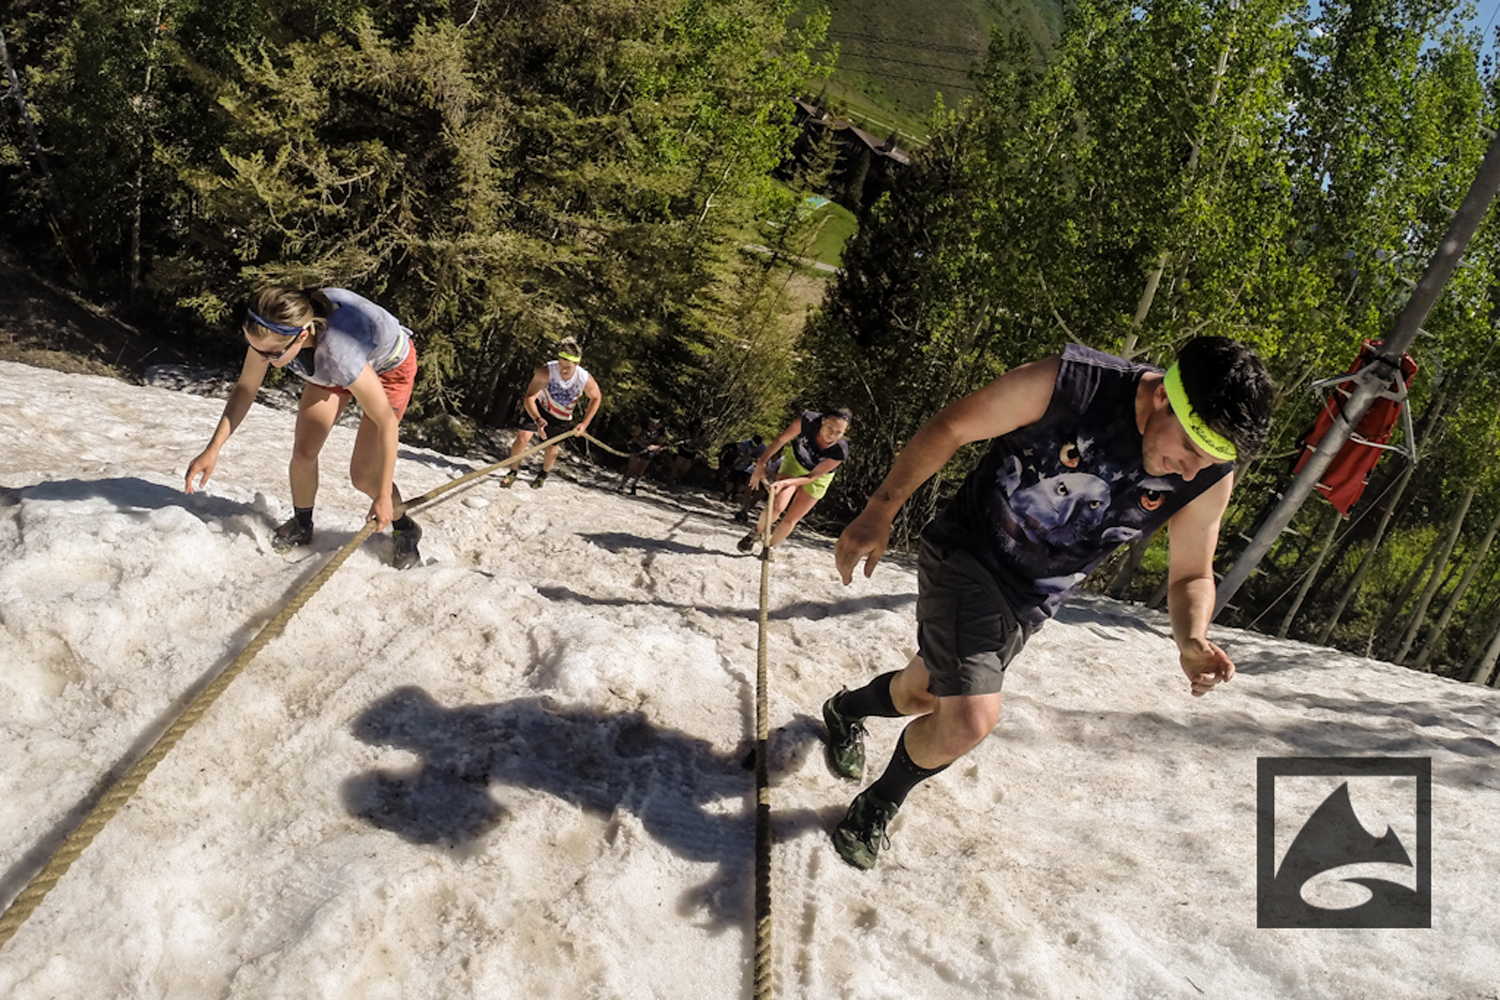 Competitors in The Eddie Bauer BADASS Dash, a 7K course with more than 25 unconventional obstacles to complete, trekked up a snow-covered mountain during part of the race.